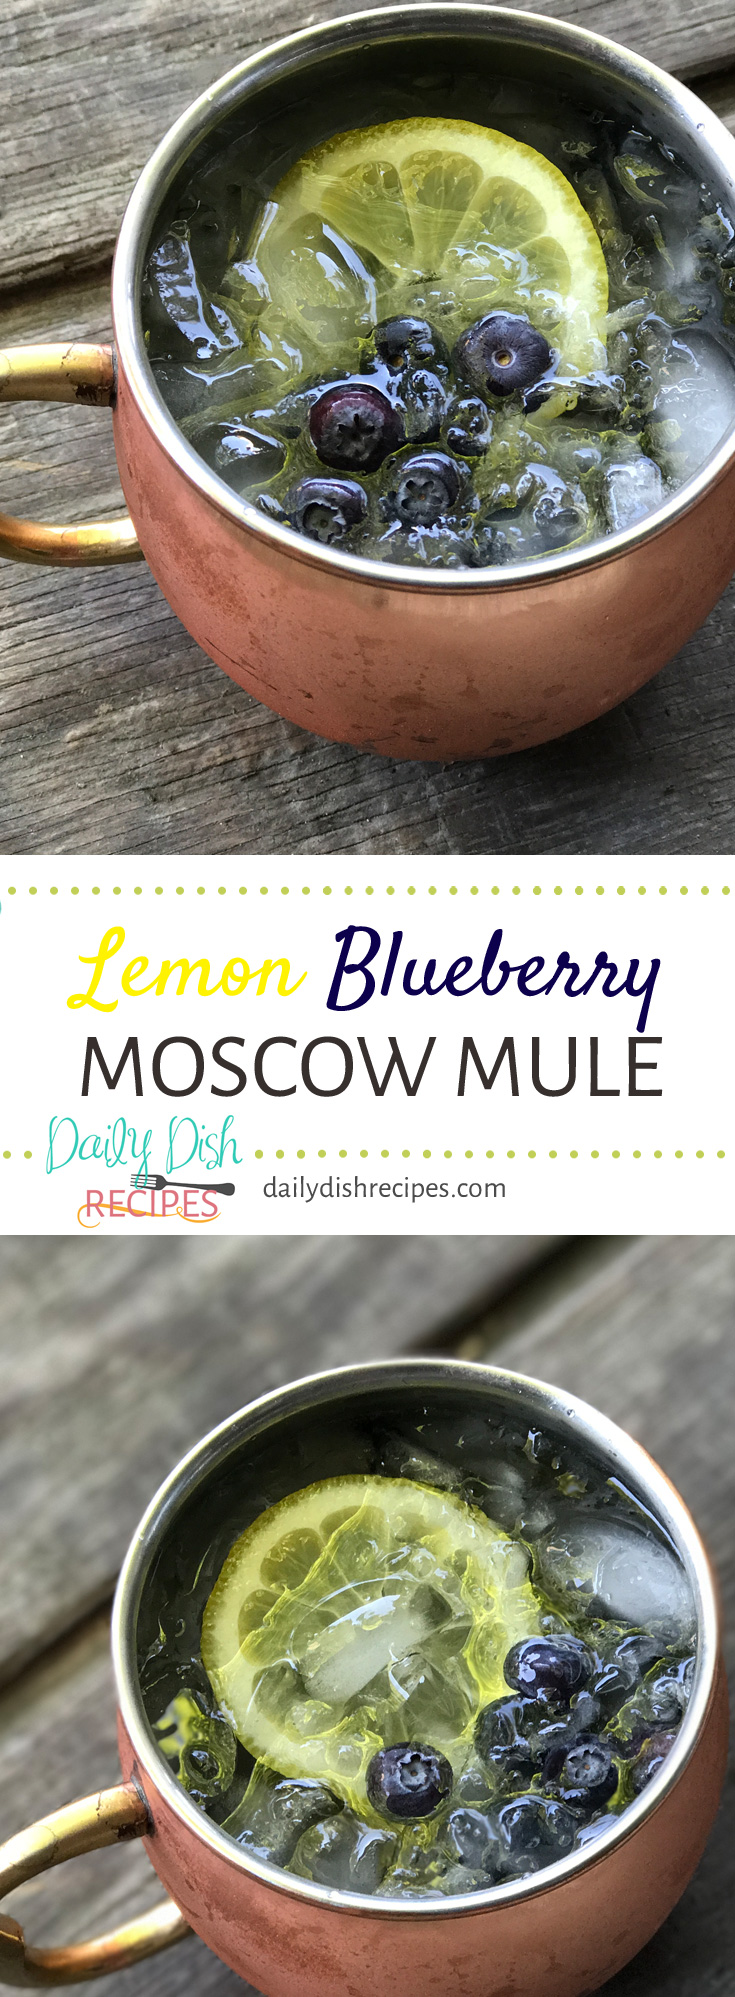 A refreshing twist on the classic cocktail, this non-traditional Lemon Blueberry Moscow Mule is delicious and a really great way to cool off on a hot day! A favorite cocktail recipe for sure!